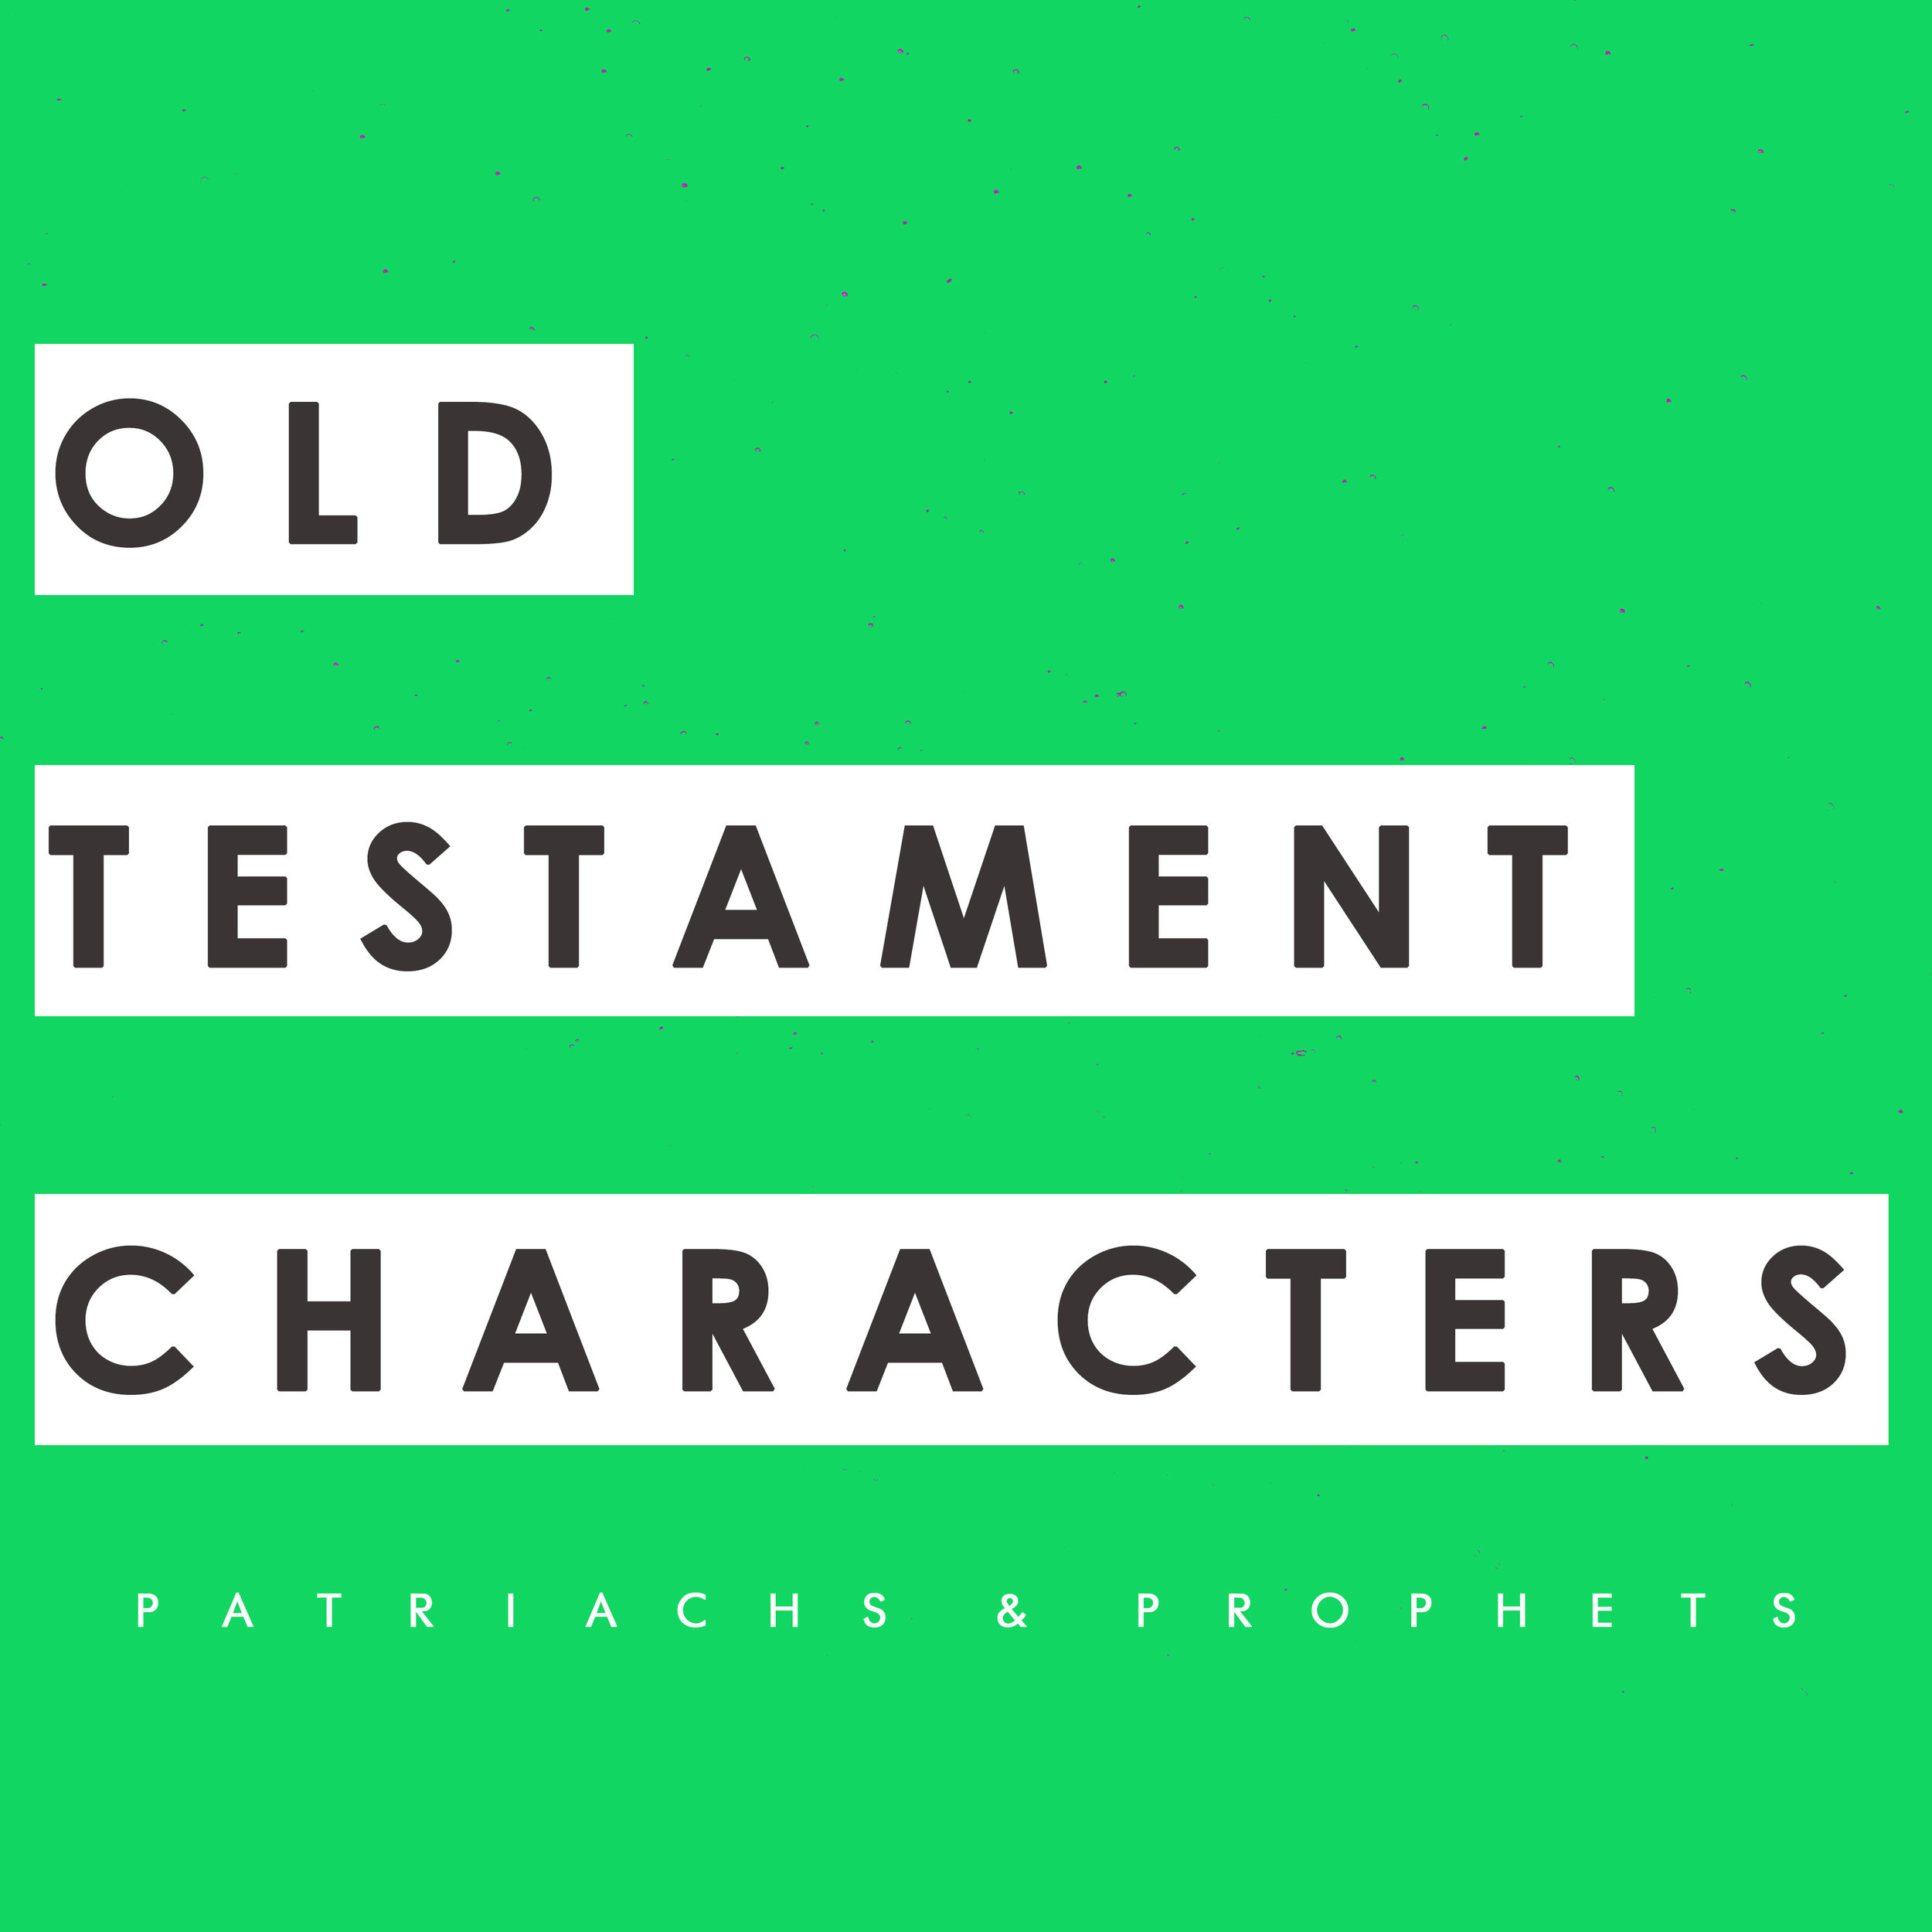 We take a look at some of the heroes of the Old Testament, seeing what they did and how we should respond.